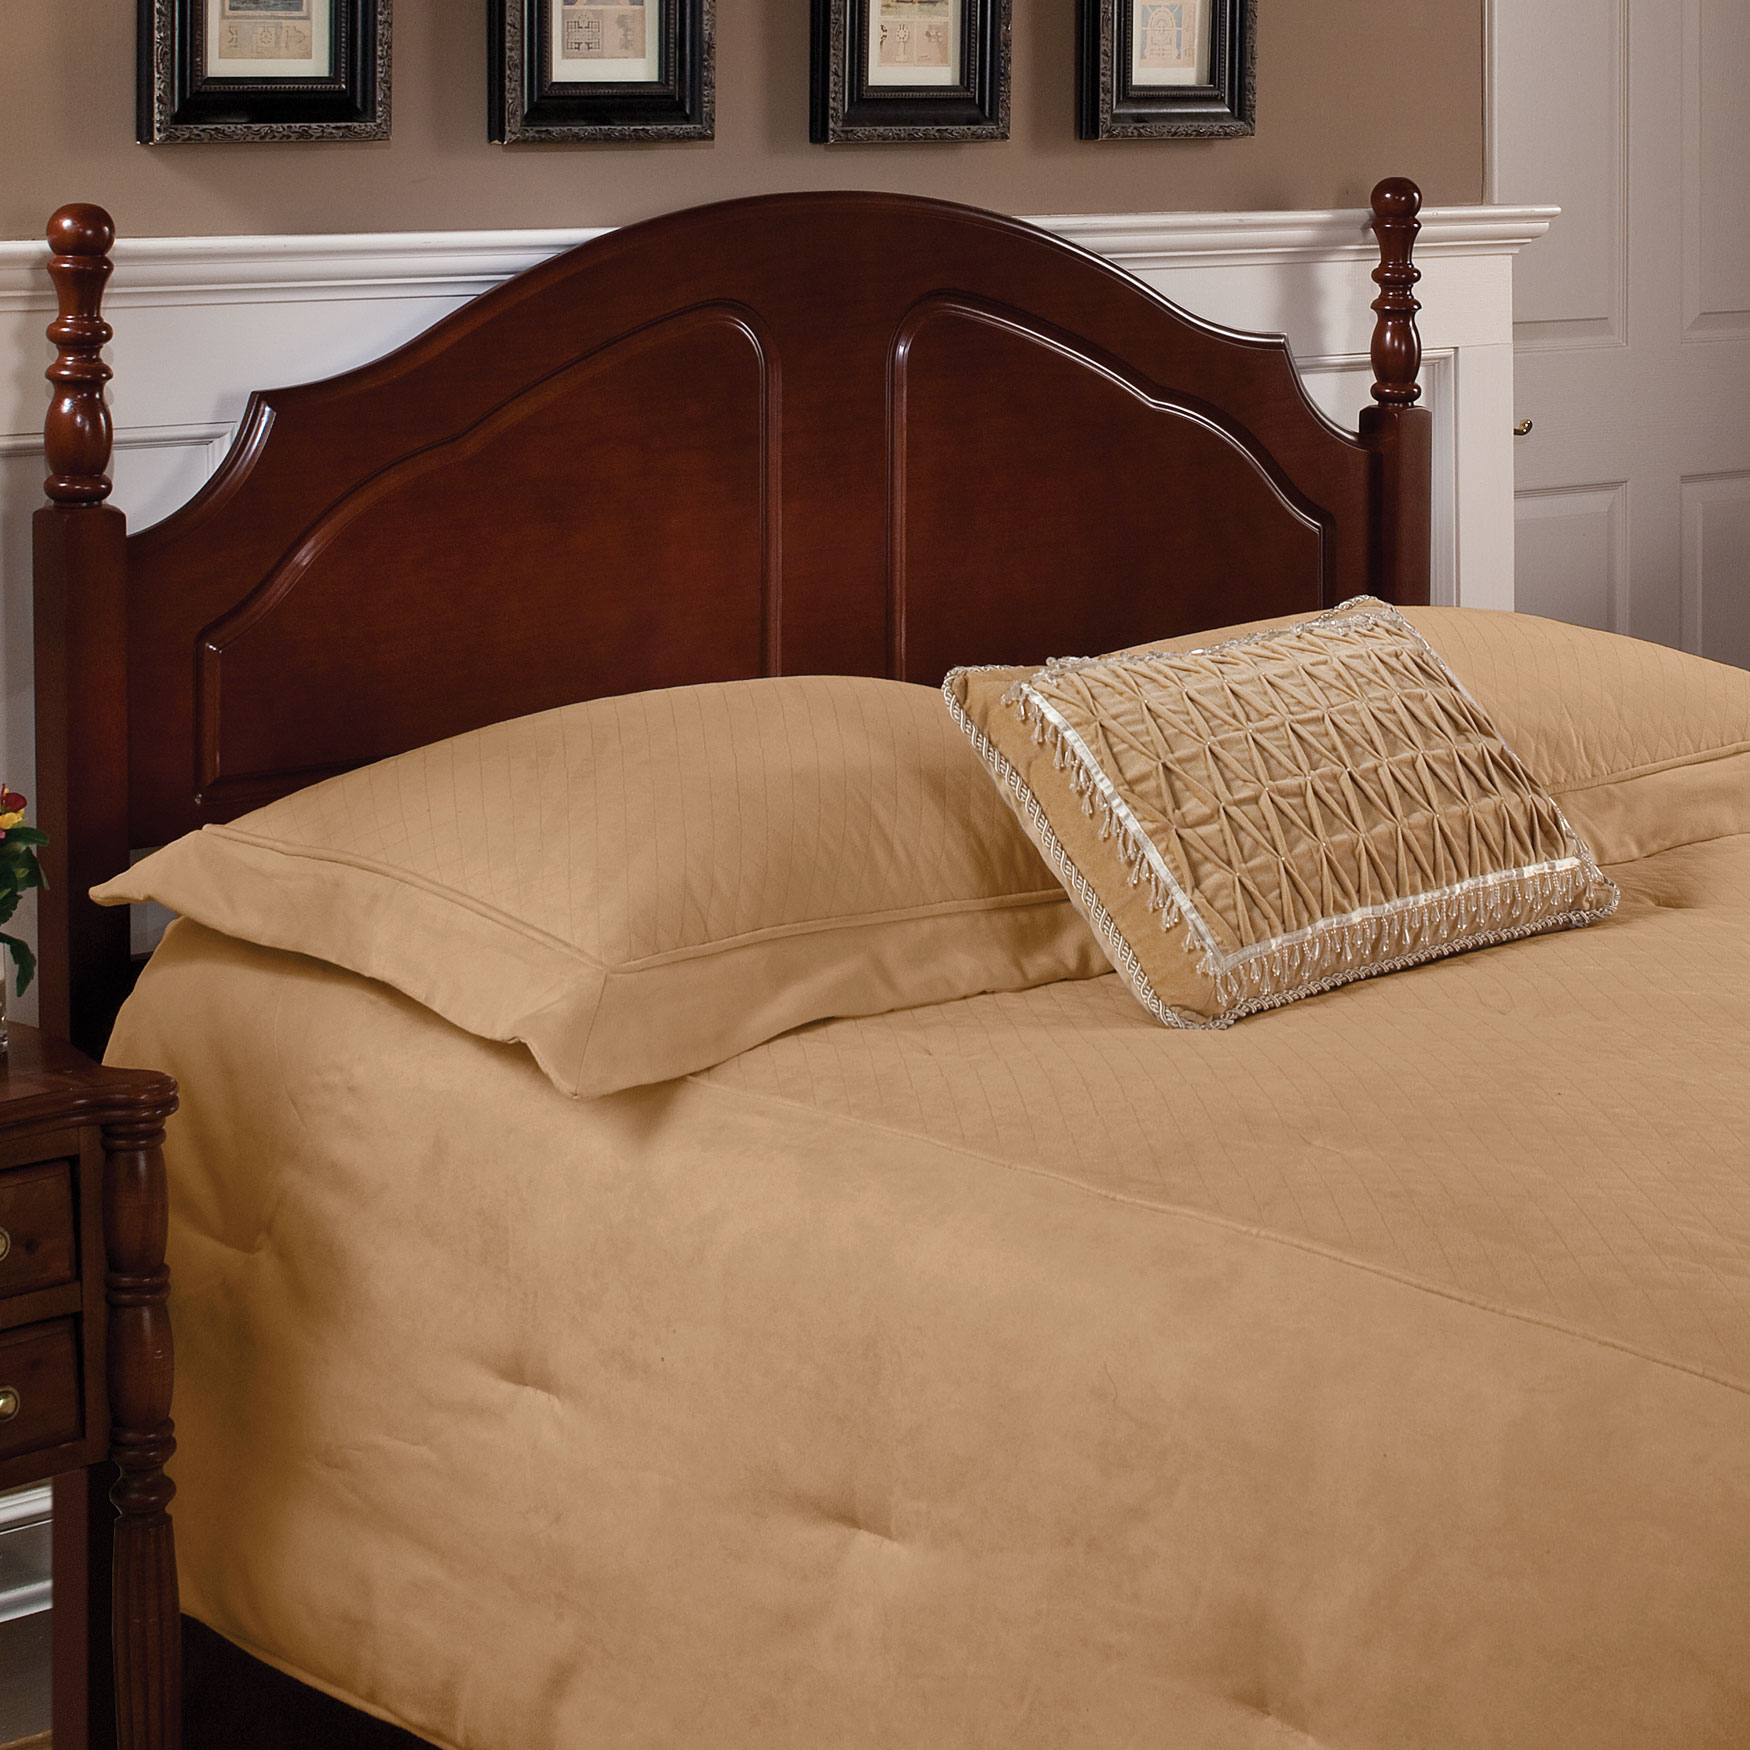 Twin Headboard with Headboard Frame, 63½'Lx39¼'Wx43'H, CHERRY